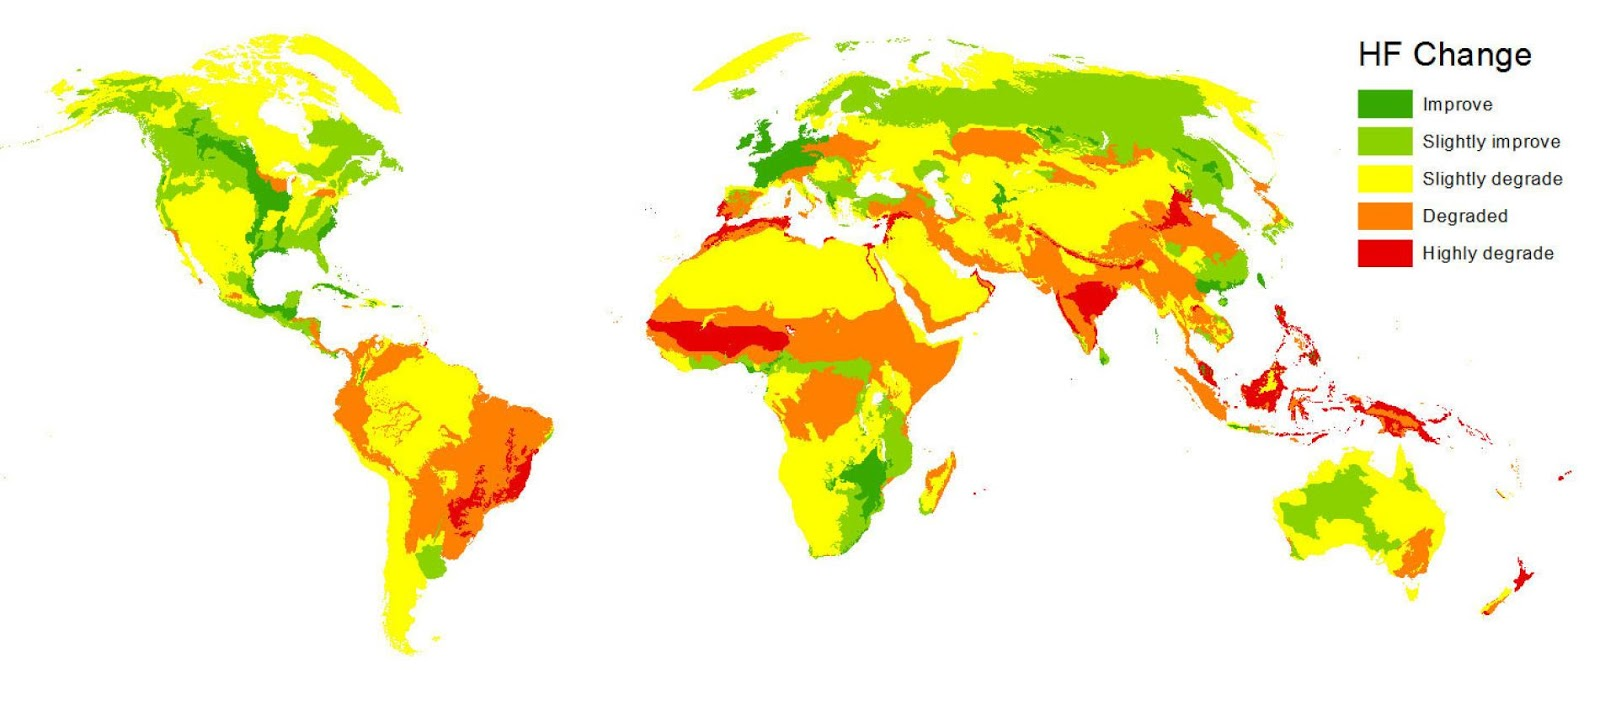 This map shows where humans' impact on the environment increased or decreased from 1993 to 2009.